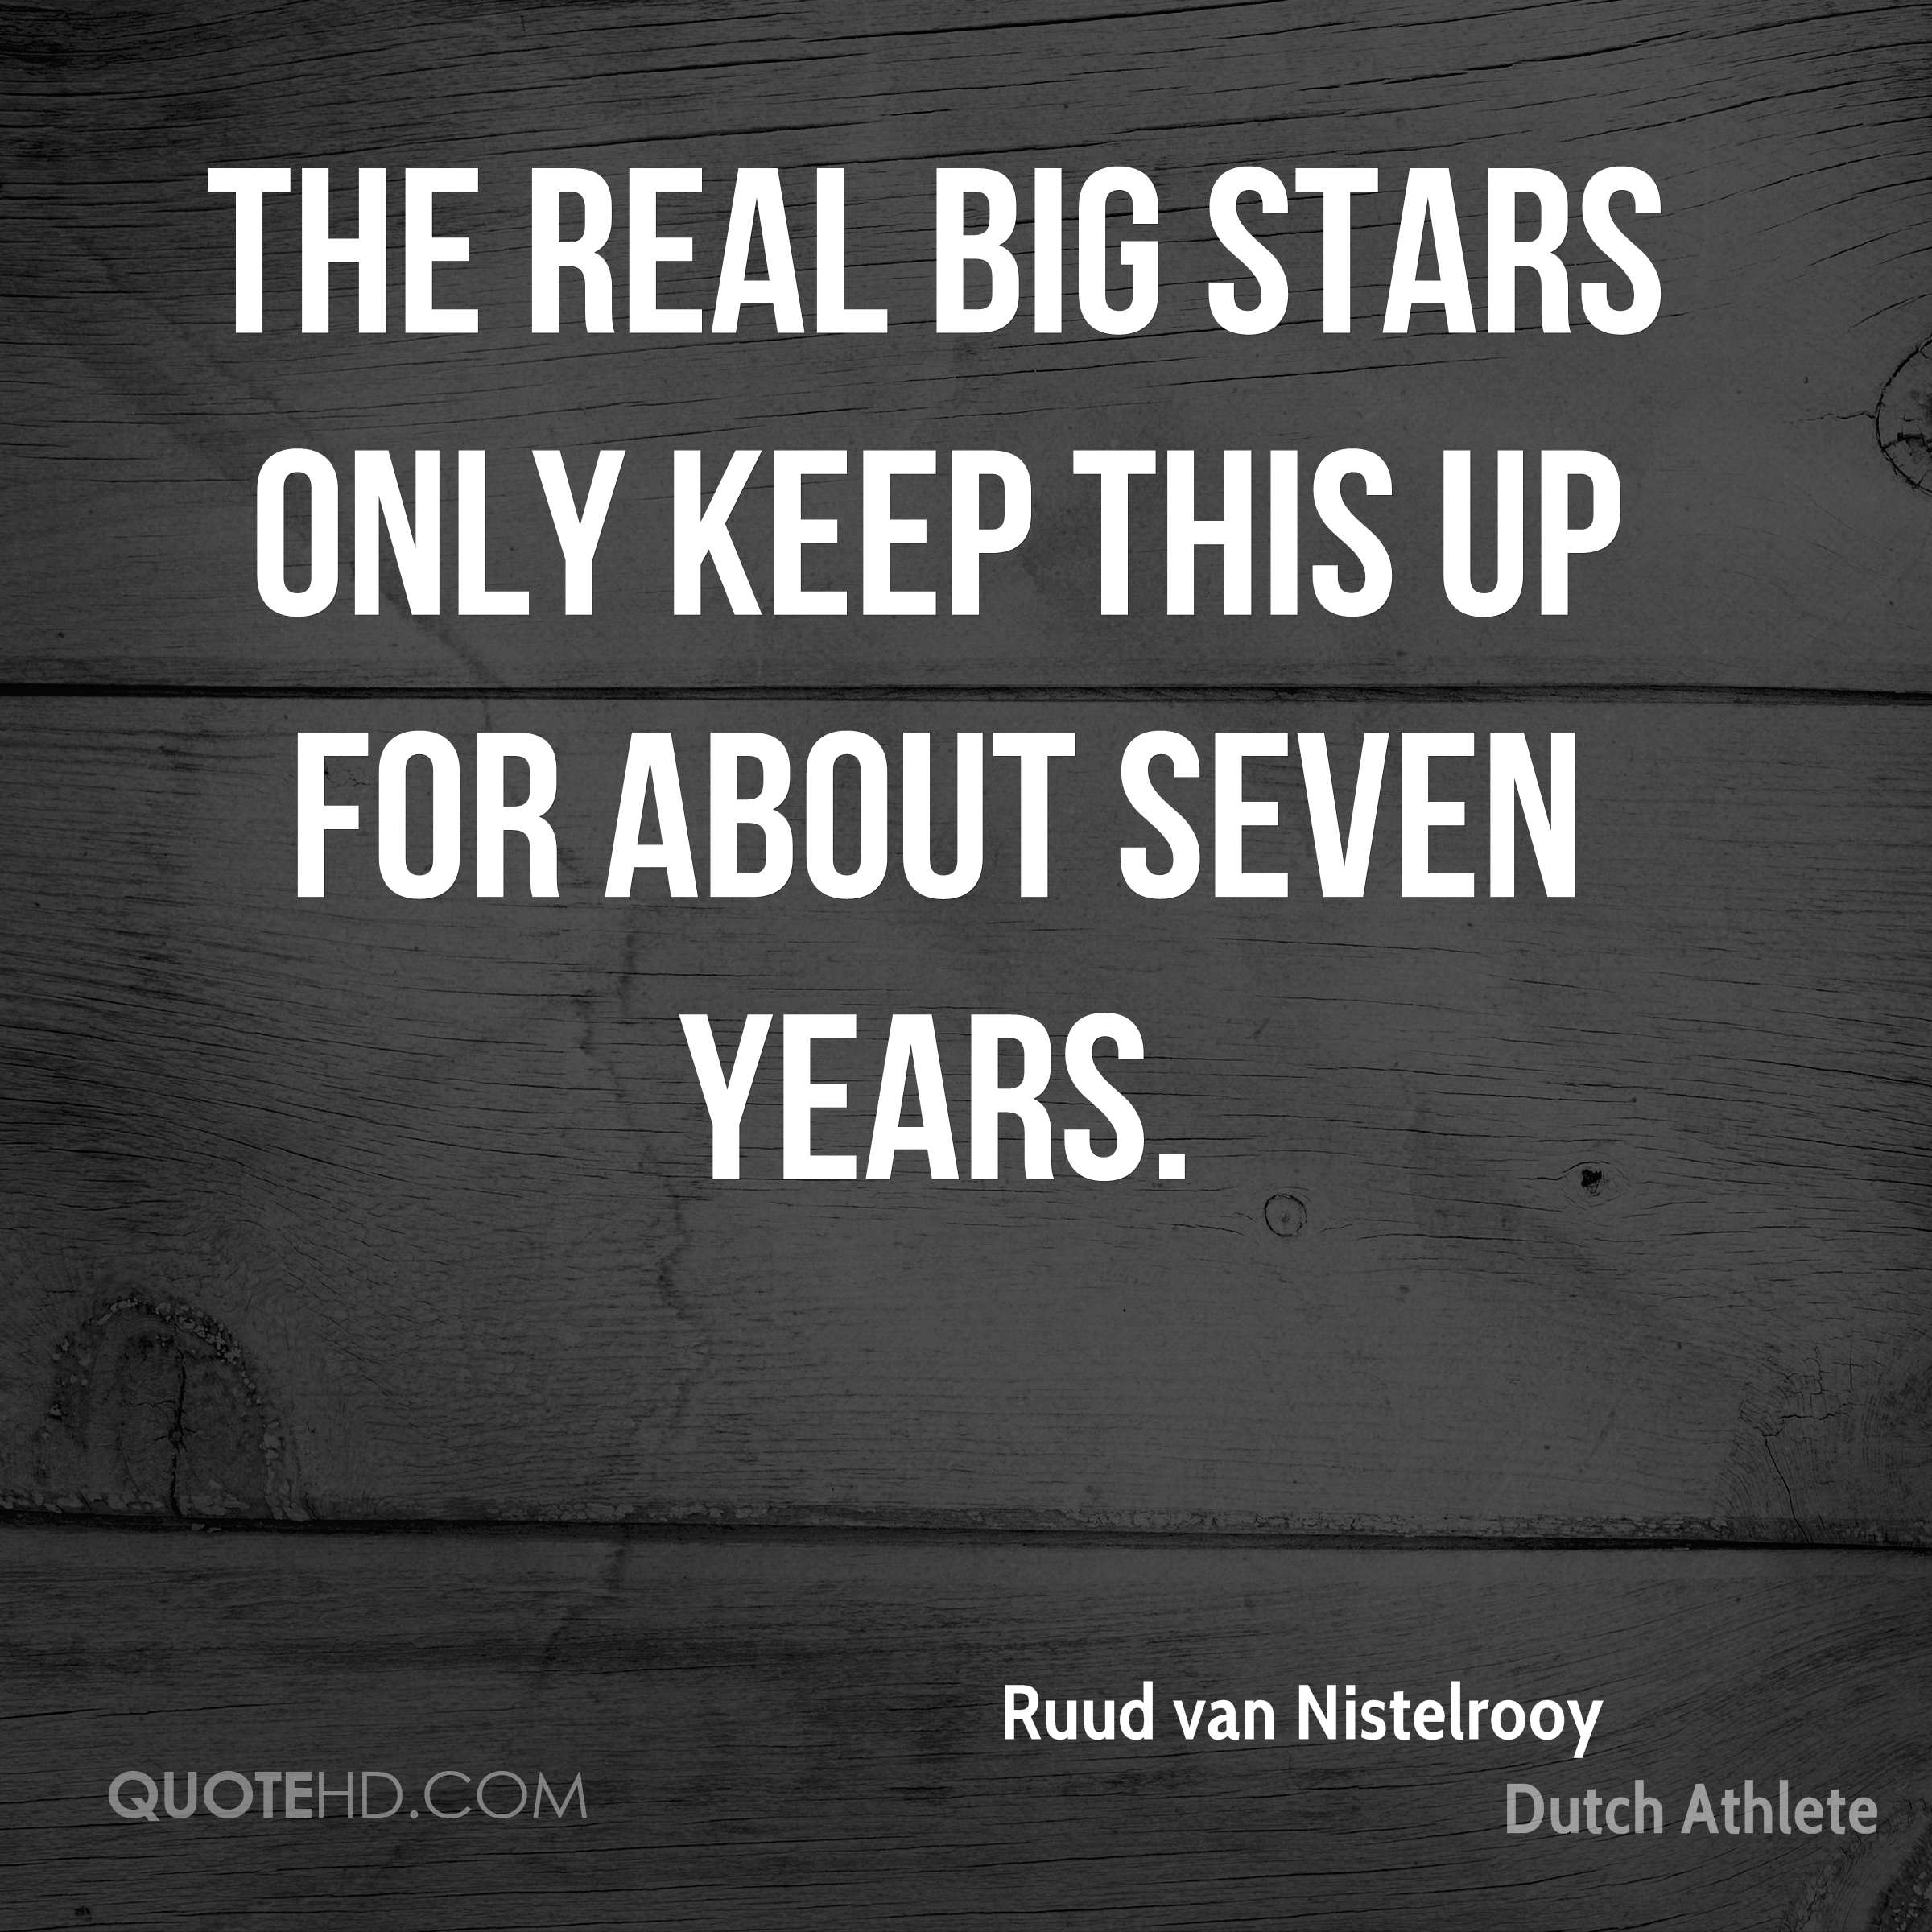 The real big stars only keep this up for about seven years.